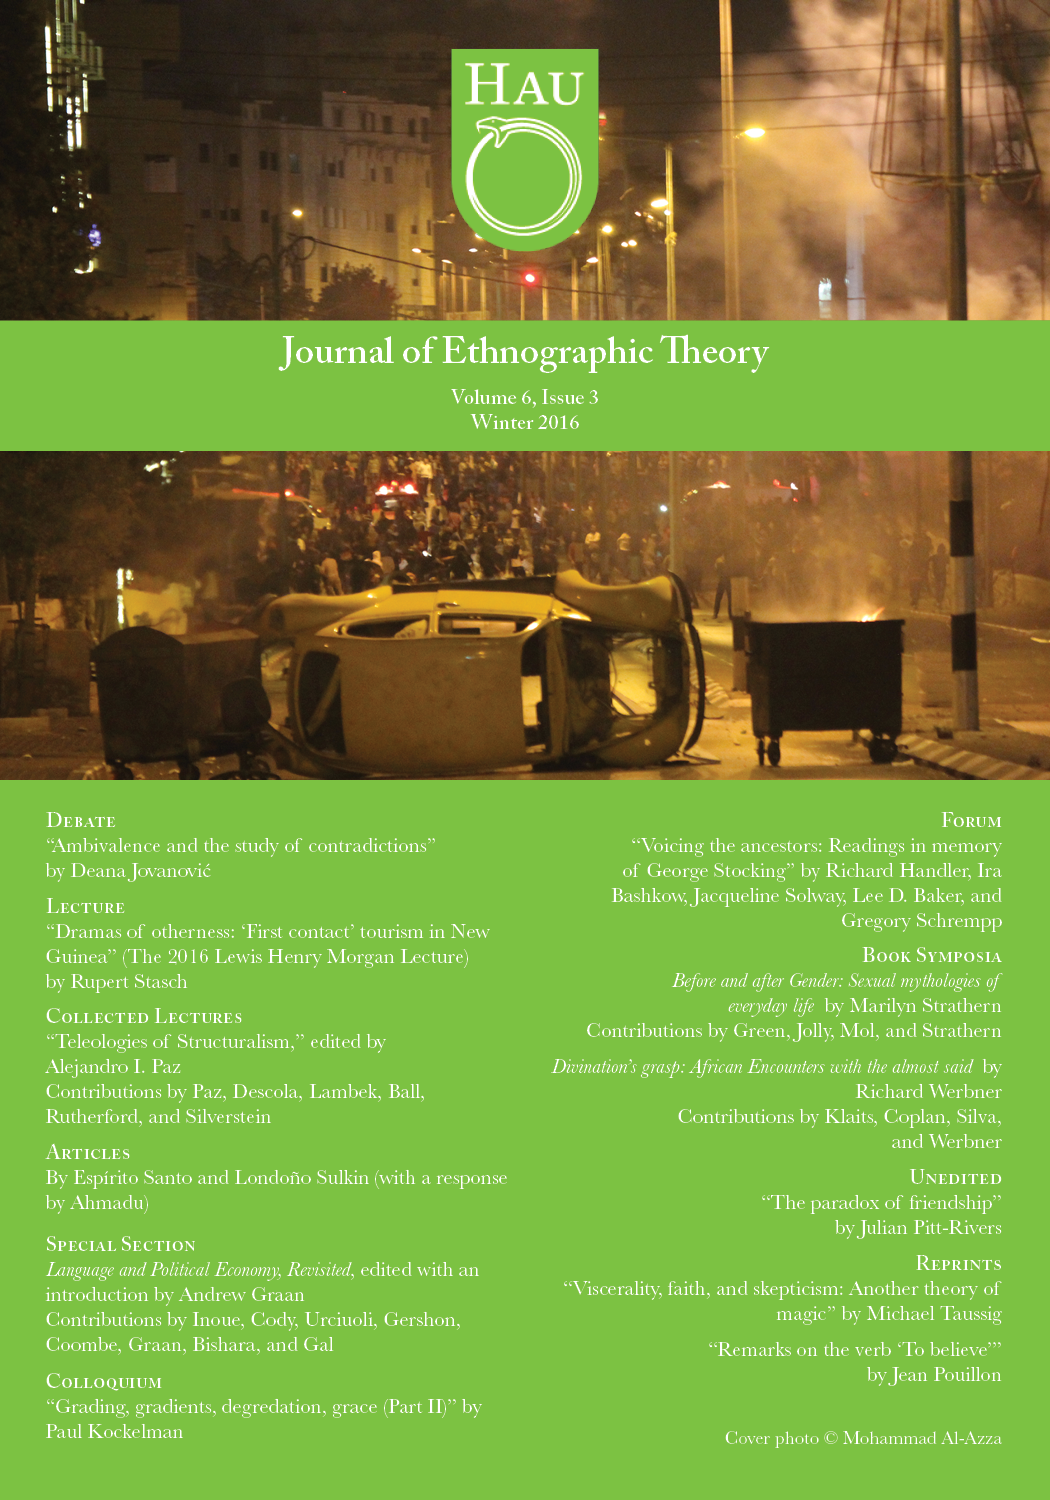 HAU - Journal of Ethnographic Theory